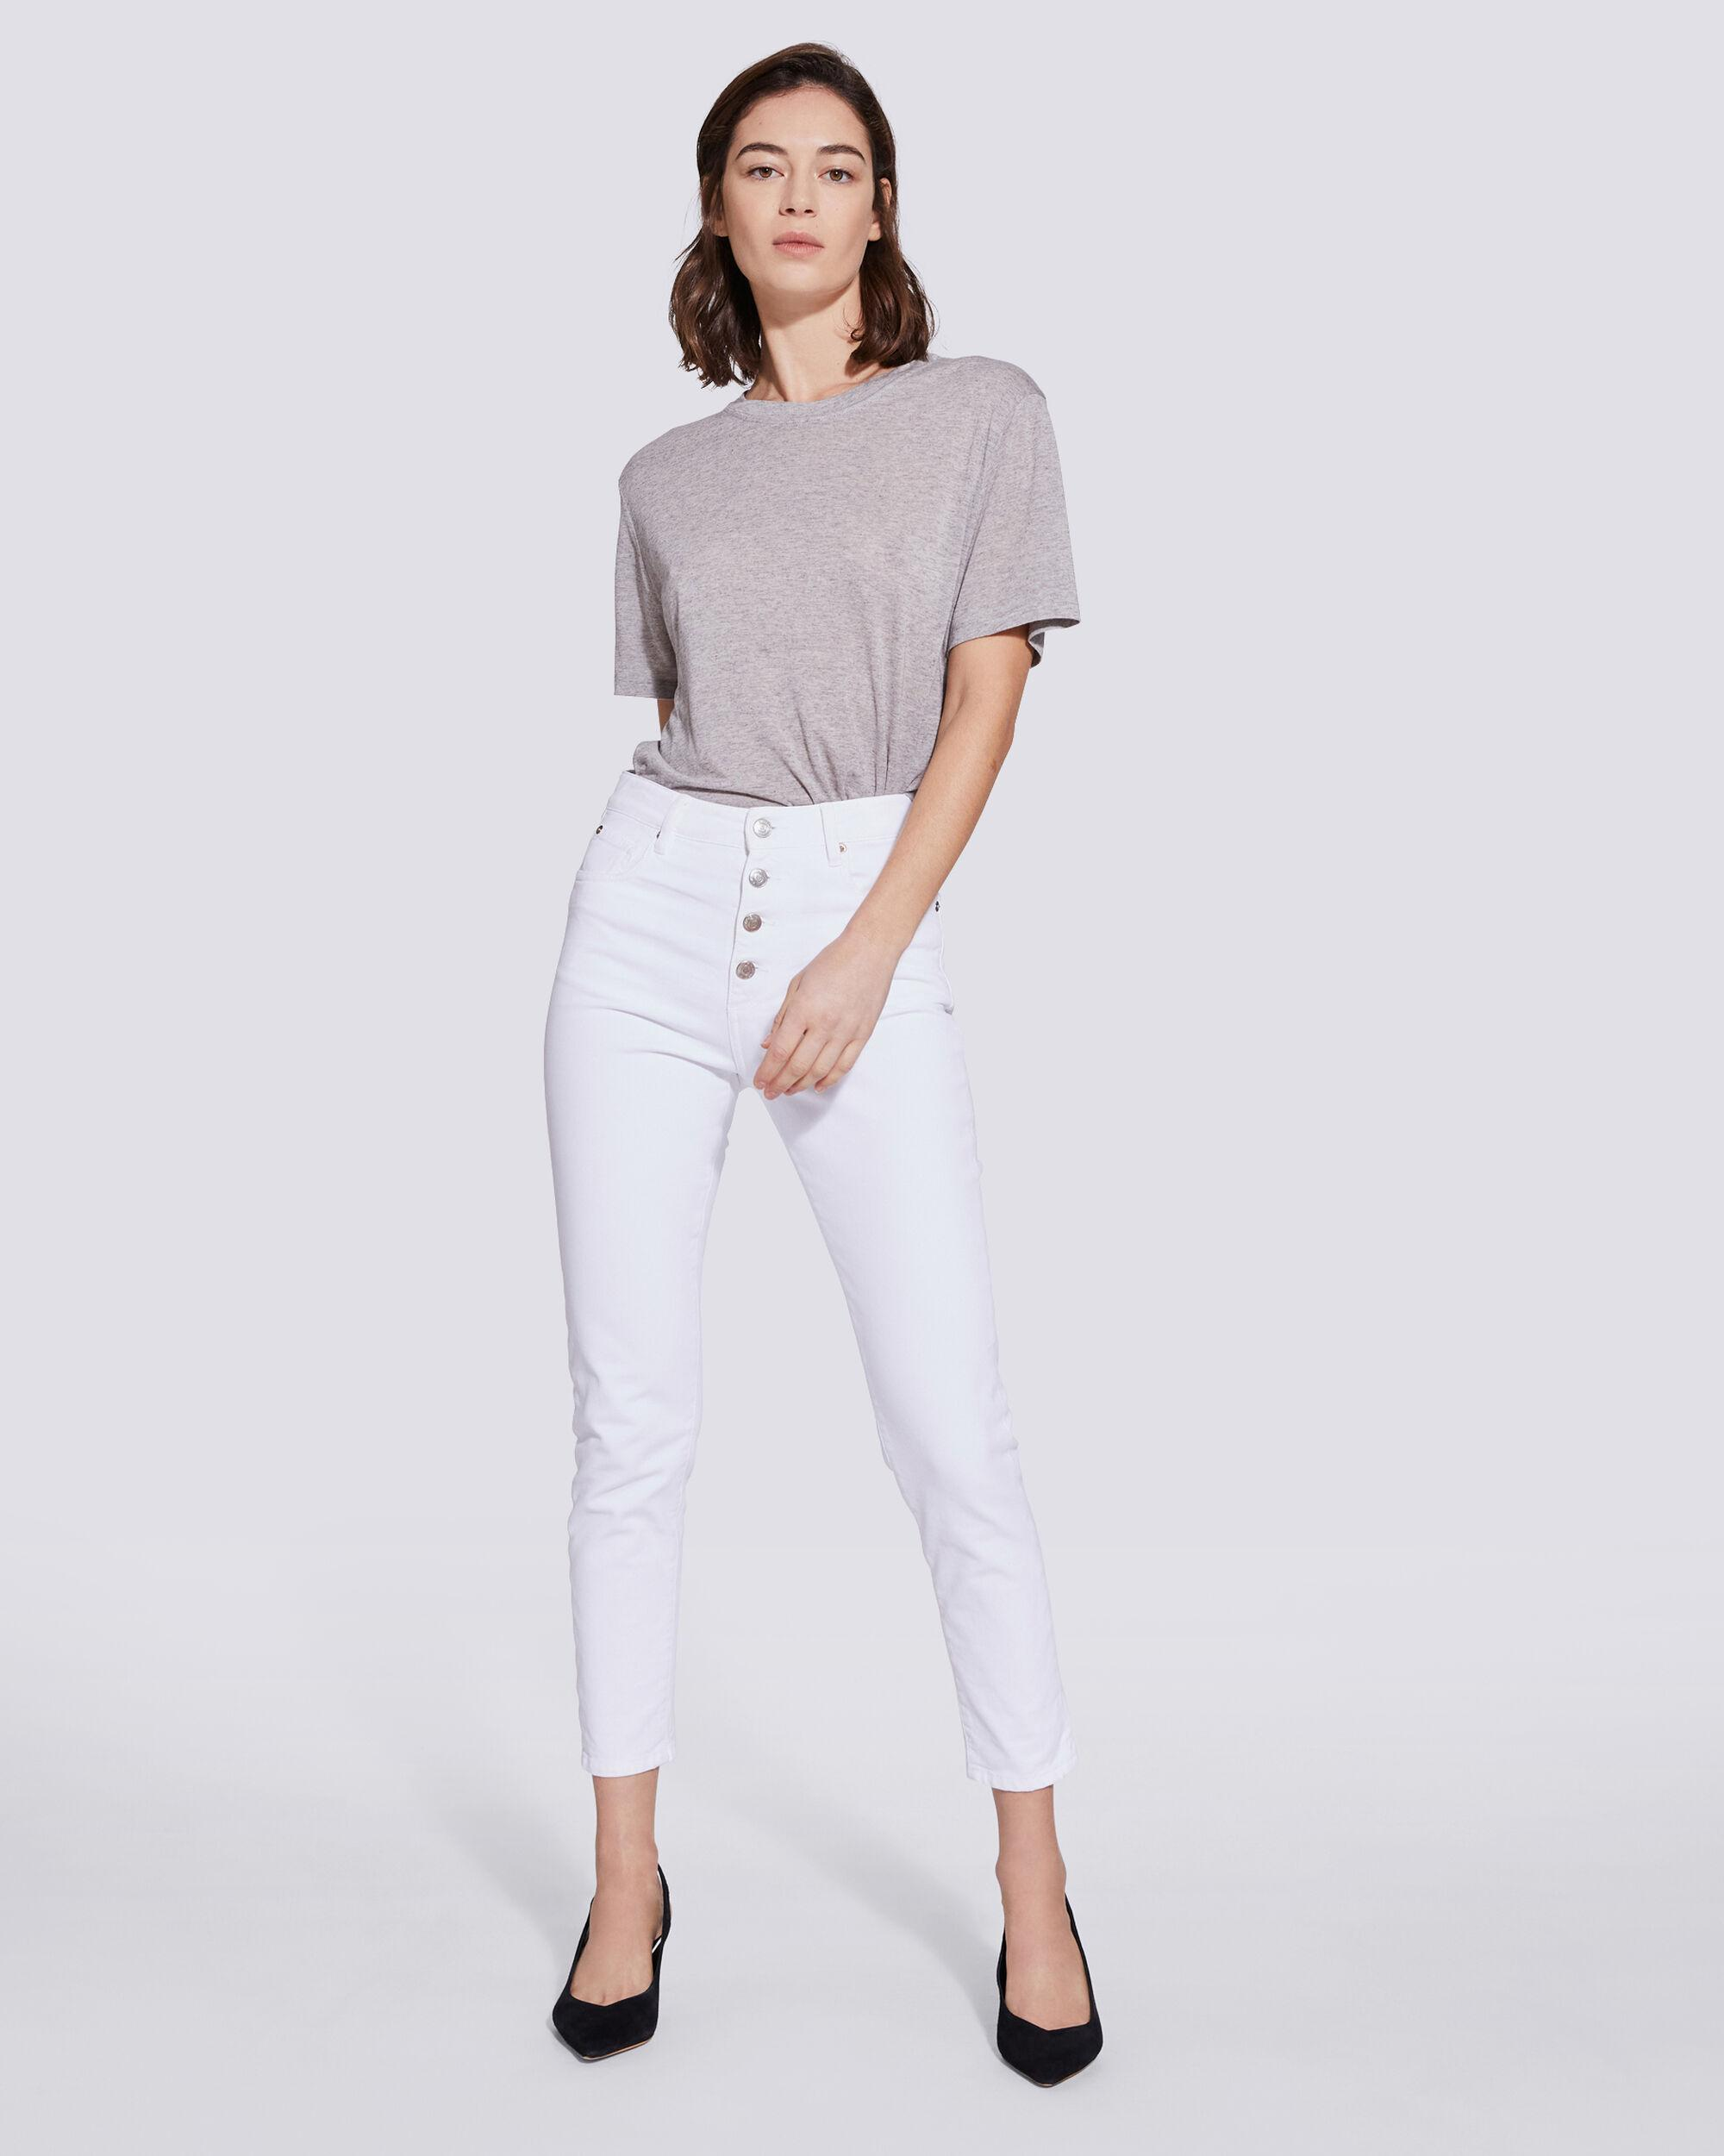 ESME HIGH RISE BUTTON FRONT CROPPED JEANS 0